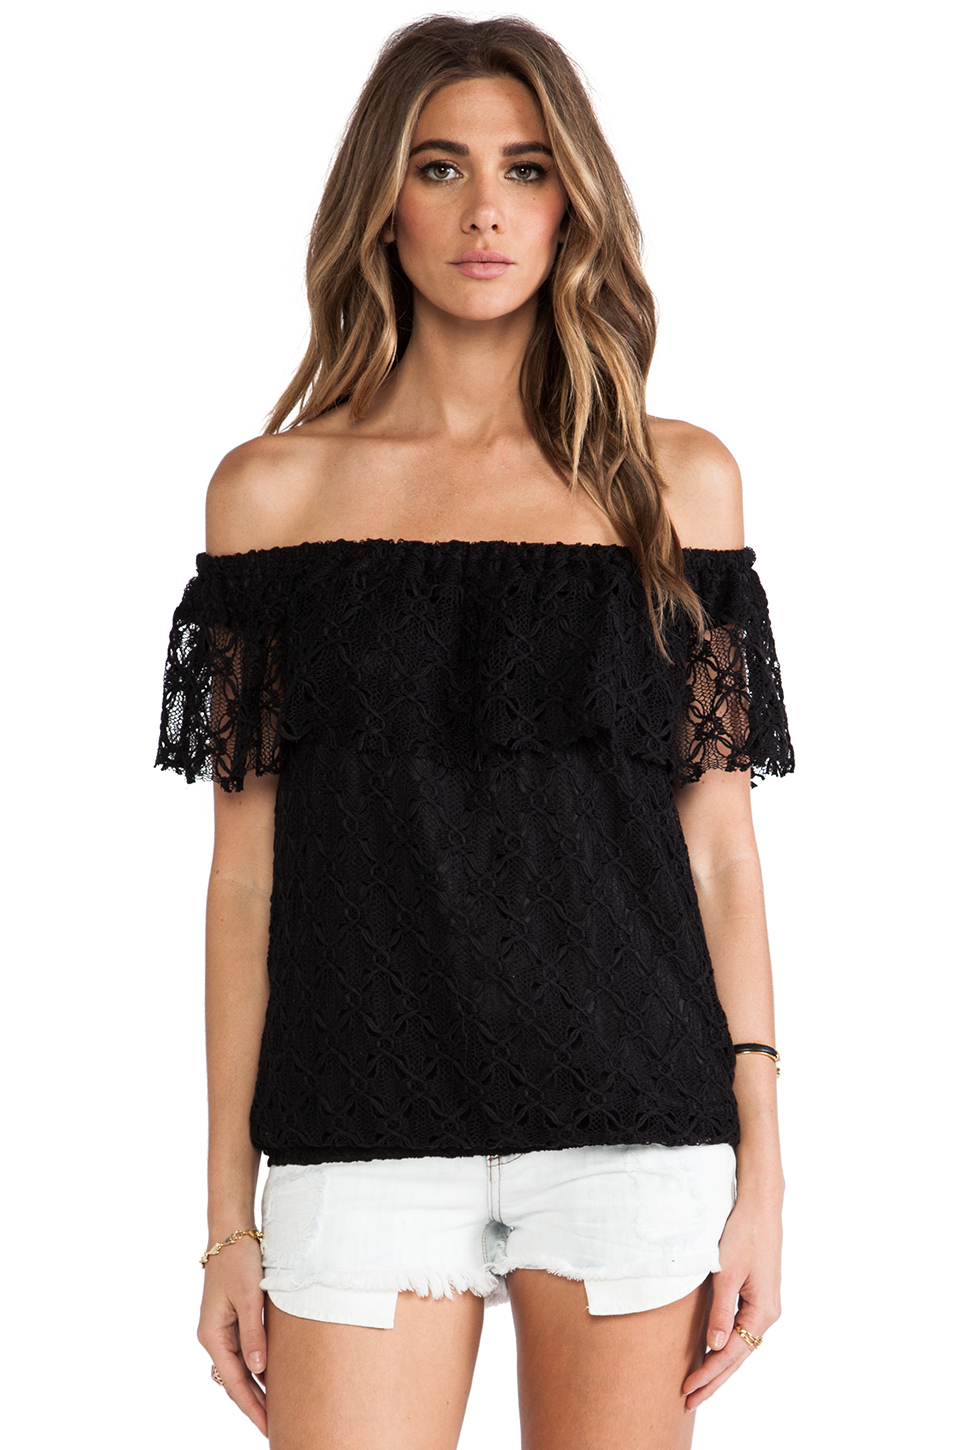 T-Bags LosAngeles Off The Shoulder Lace Top in Black | REVOLVE